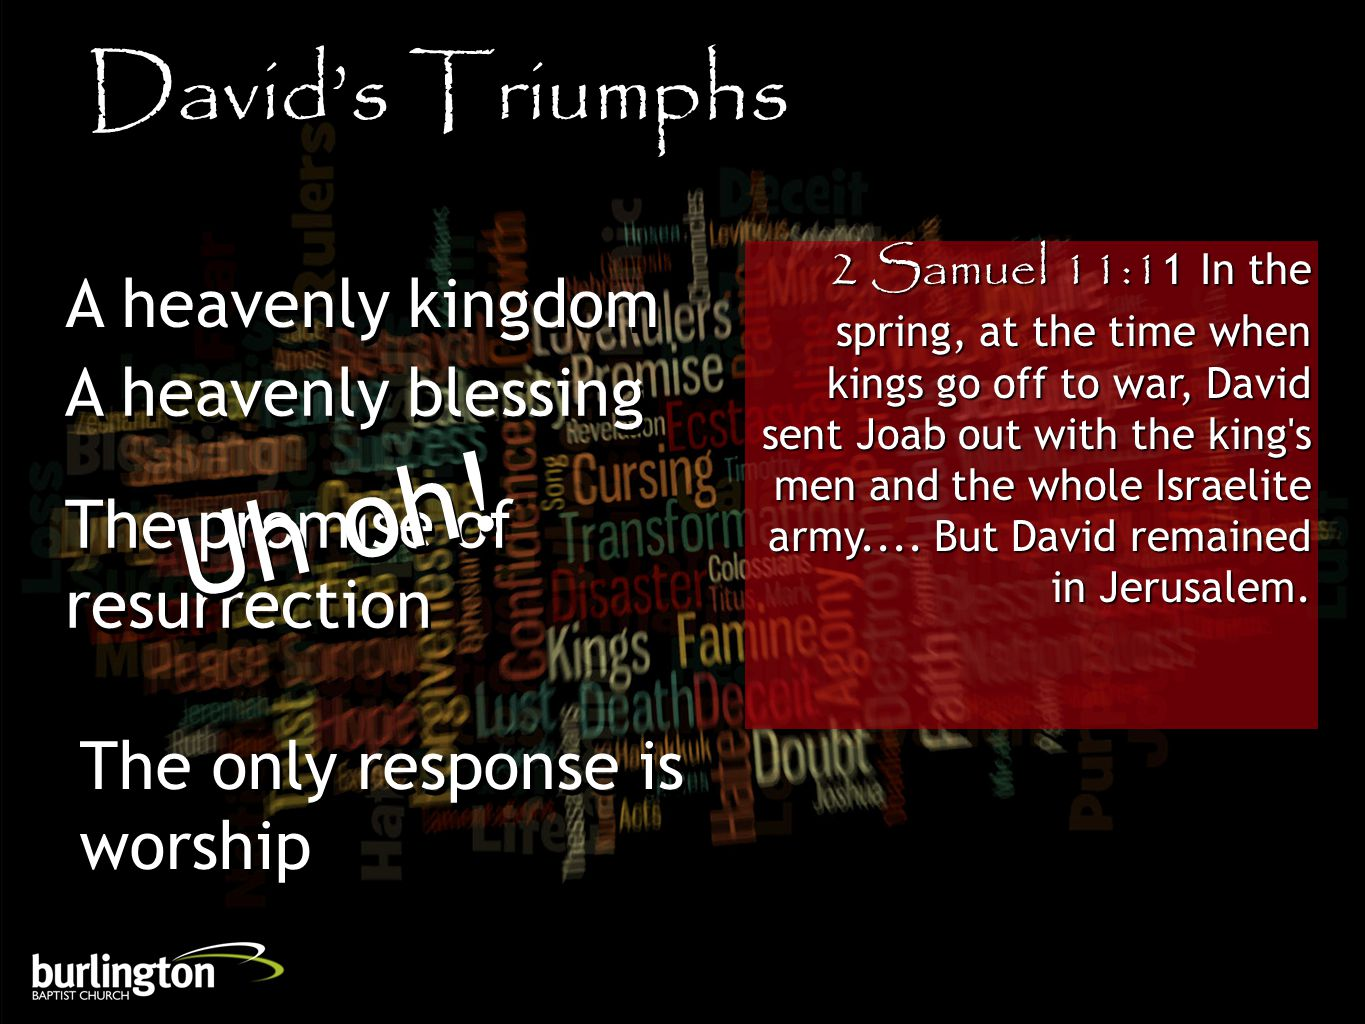 2 Samuel 11:11 In the spring, at the time when kings go off to war, David sent Joab out with the king's men and the whole Israelite army.... But David